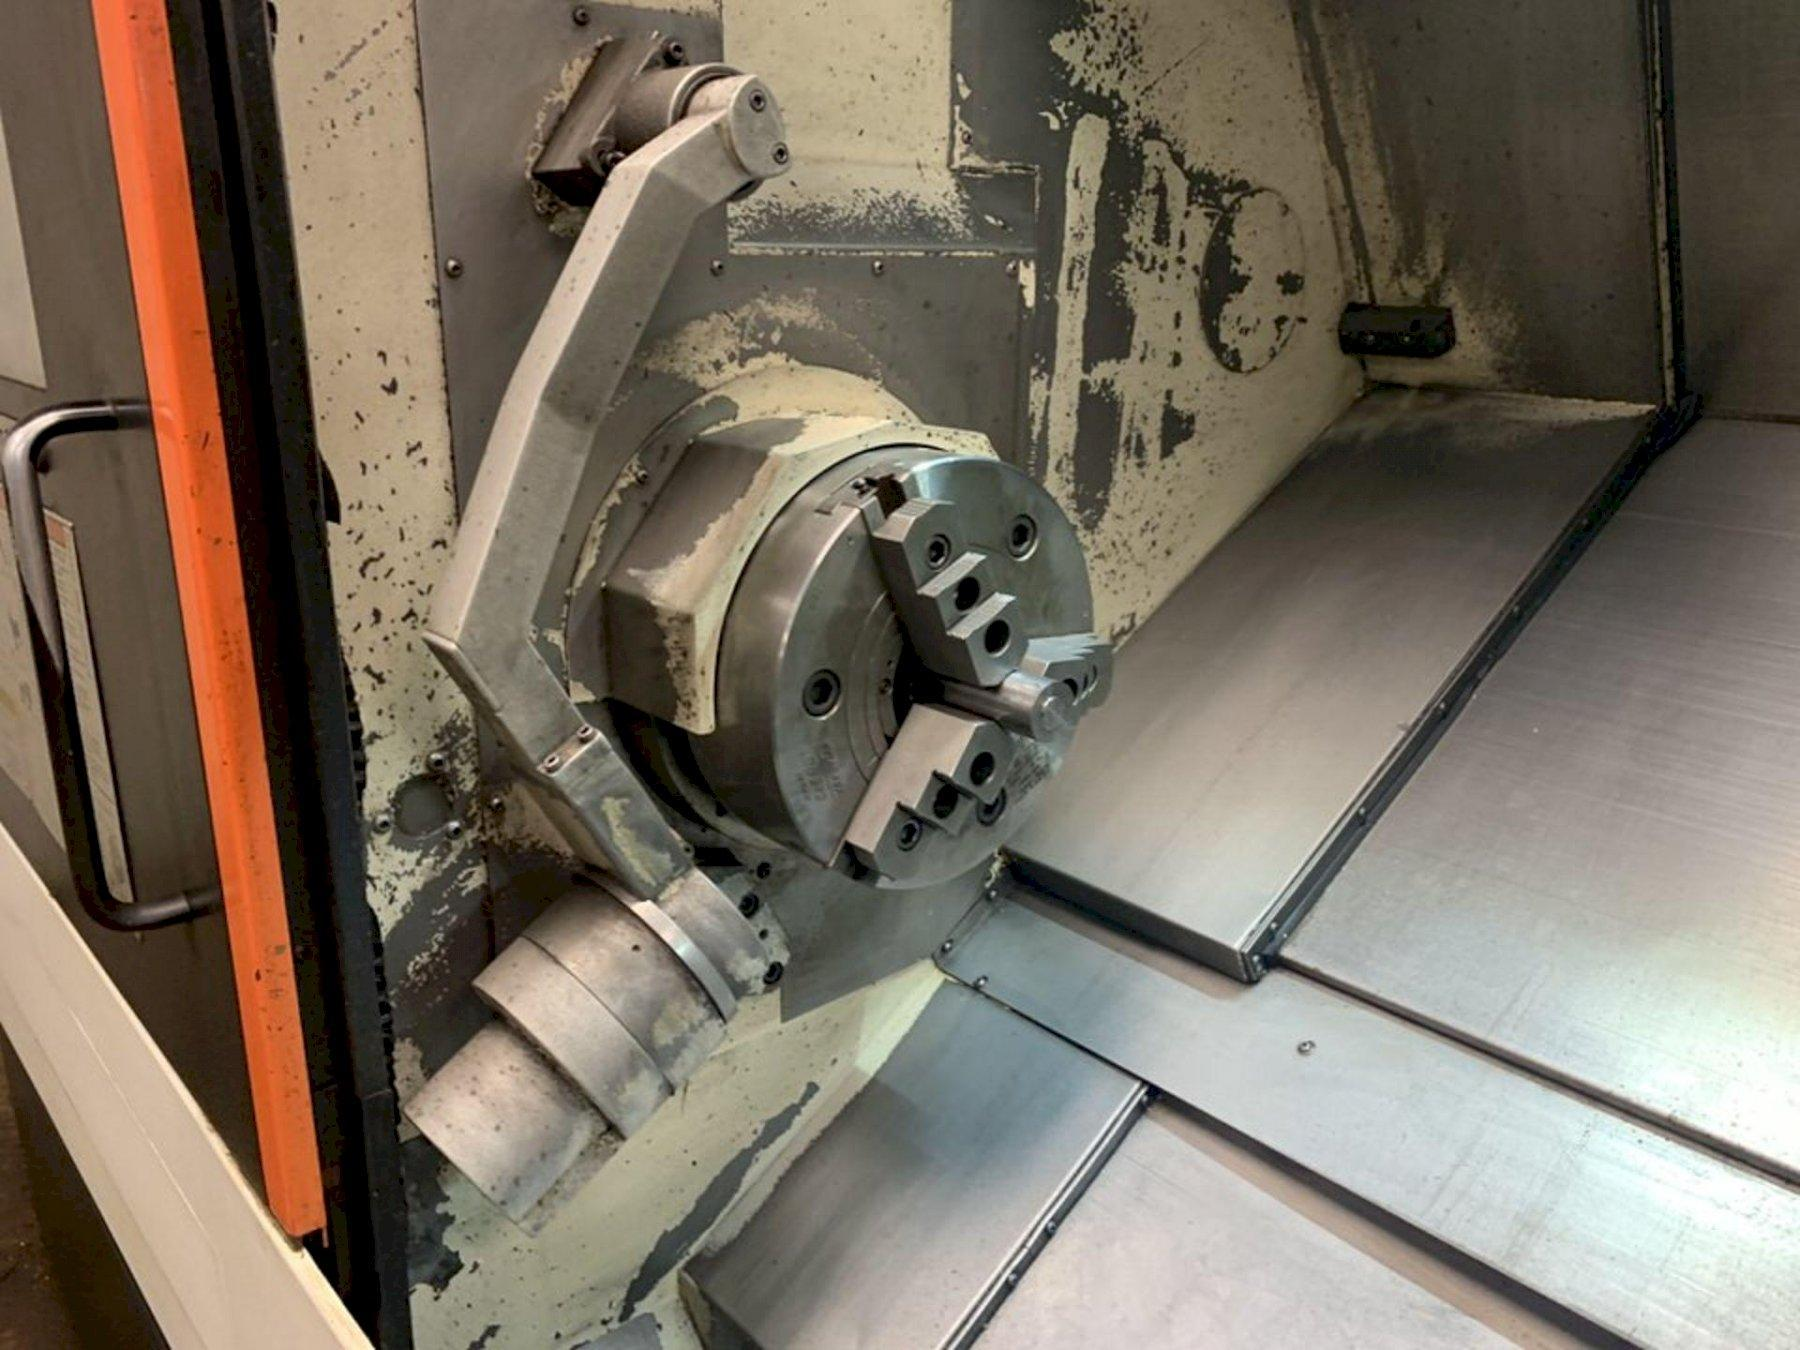 """MAZAK QUICK TURN SMART 350 CNC LATHE, Mazatrol Smart CNC Control, 28.3"""" Swing, 12"""" 3-Jaw Chuck, 52"""" Between Centers, 48"""" Max Turning Length, 4"""" Bar Capacity, 30 HP Spindle, 3300 Max Spindle RPM, 12-Position Turret, Tool Setter, Chip Conveyor & Coolant System, New 2012."""